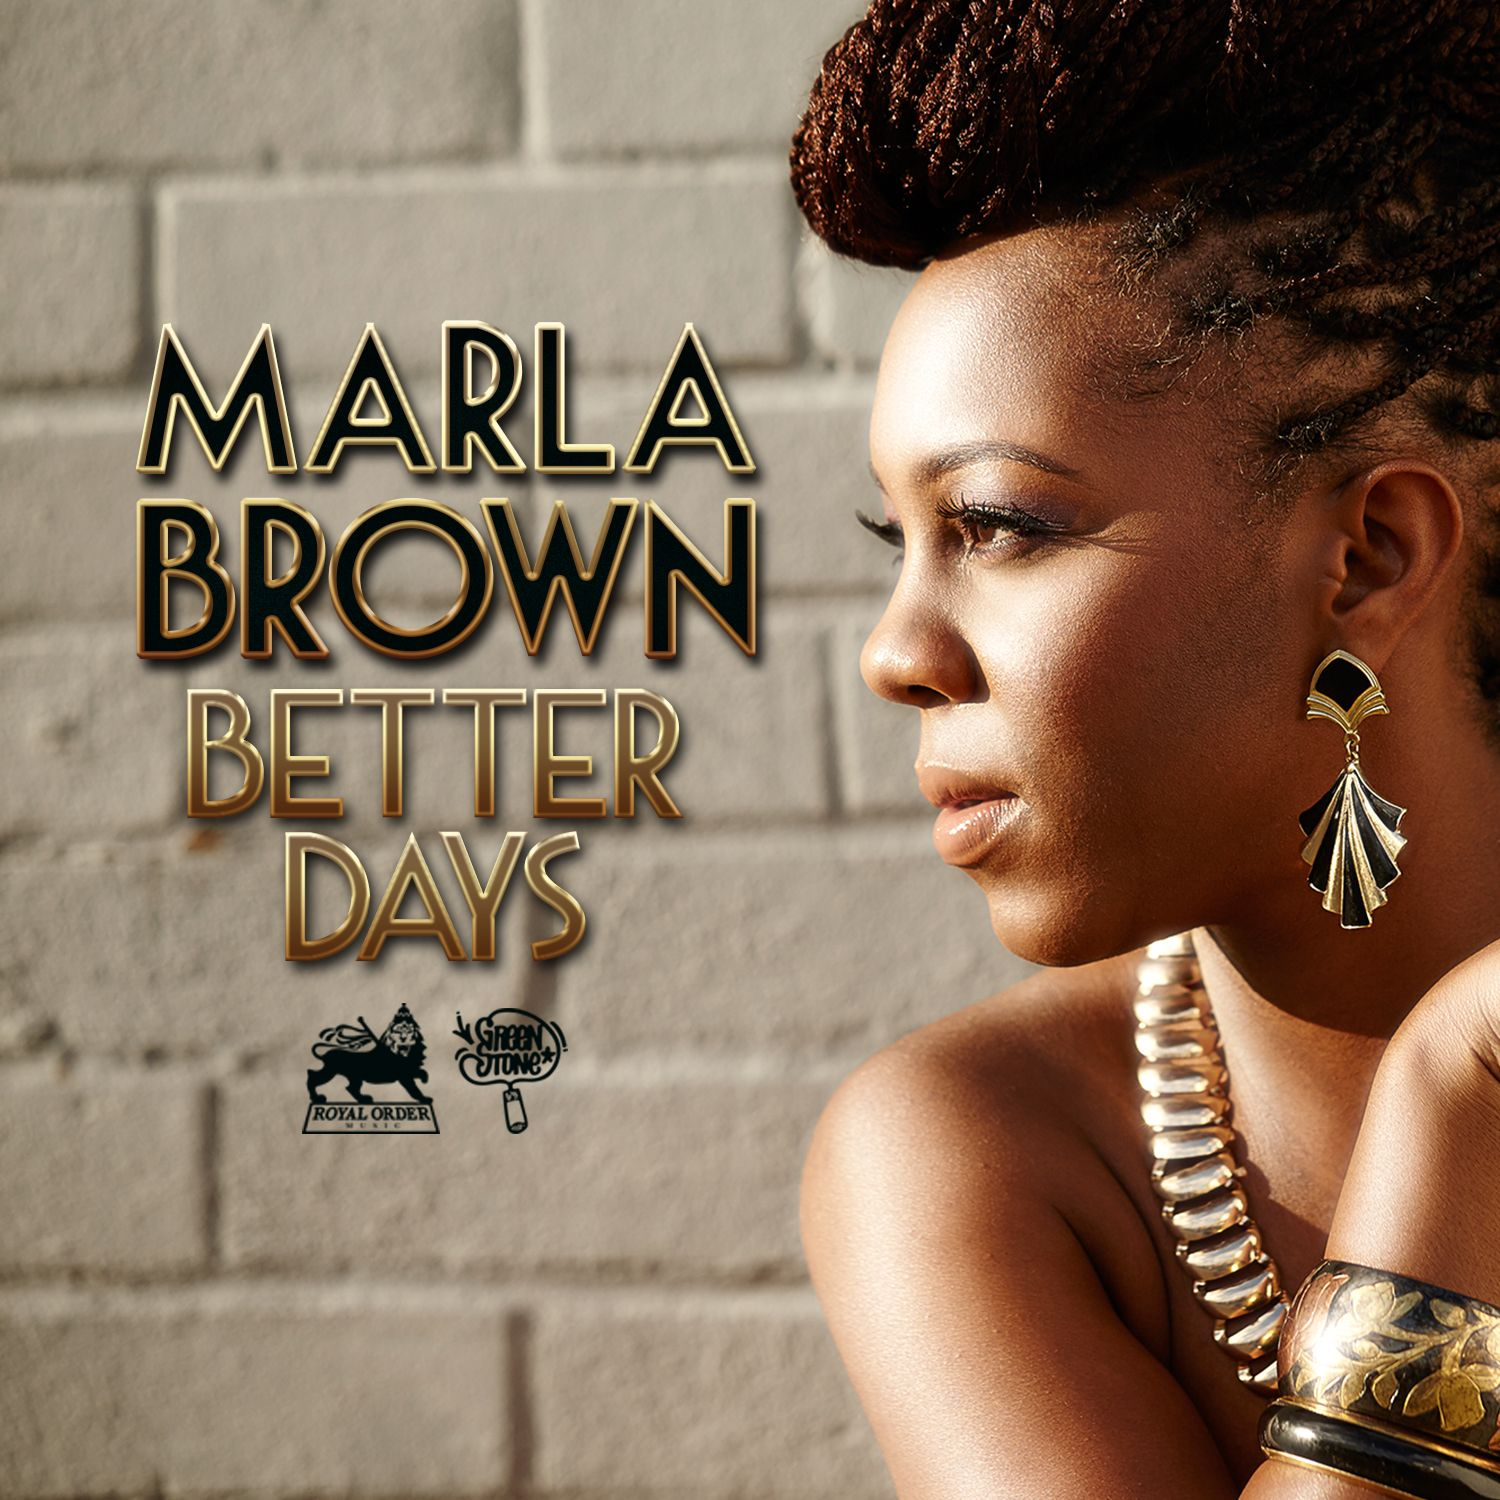 """Post Malone Better Now Song Download: MARLA BROWN - """"BETTER DAYS @itsMarlaB"""" - Listen"""